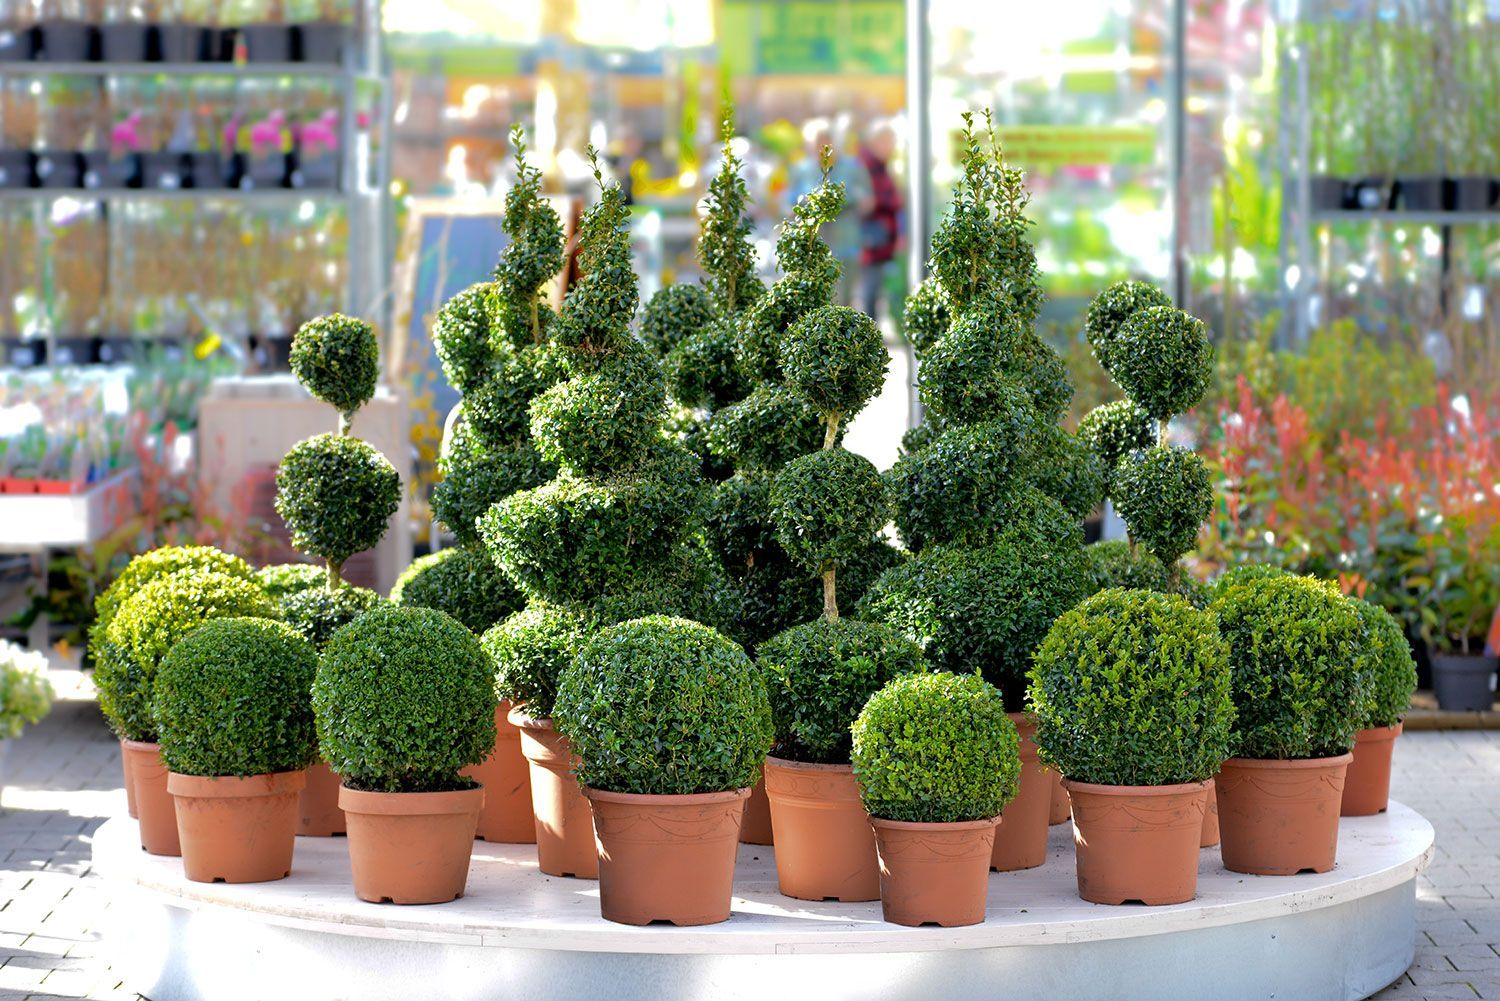 Artificial Outdoor Plants Fake Trees Artificialplantsdecoryards Artificial Plants Small Artificial Plants Artificial Plants Outdoor